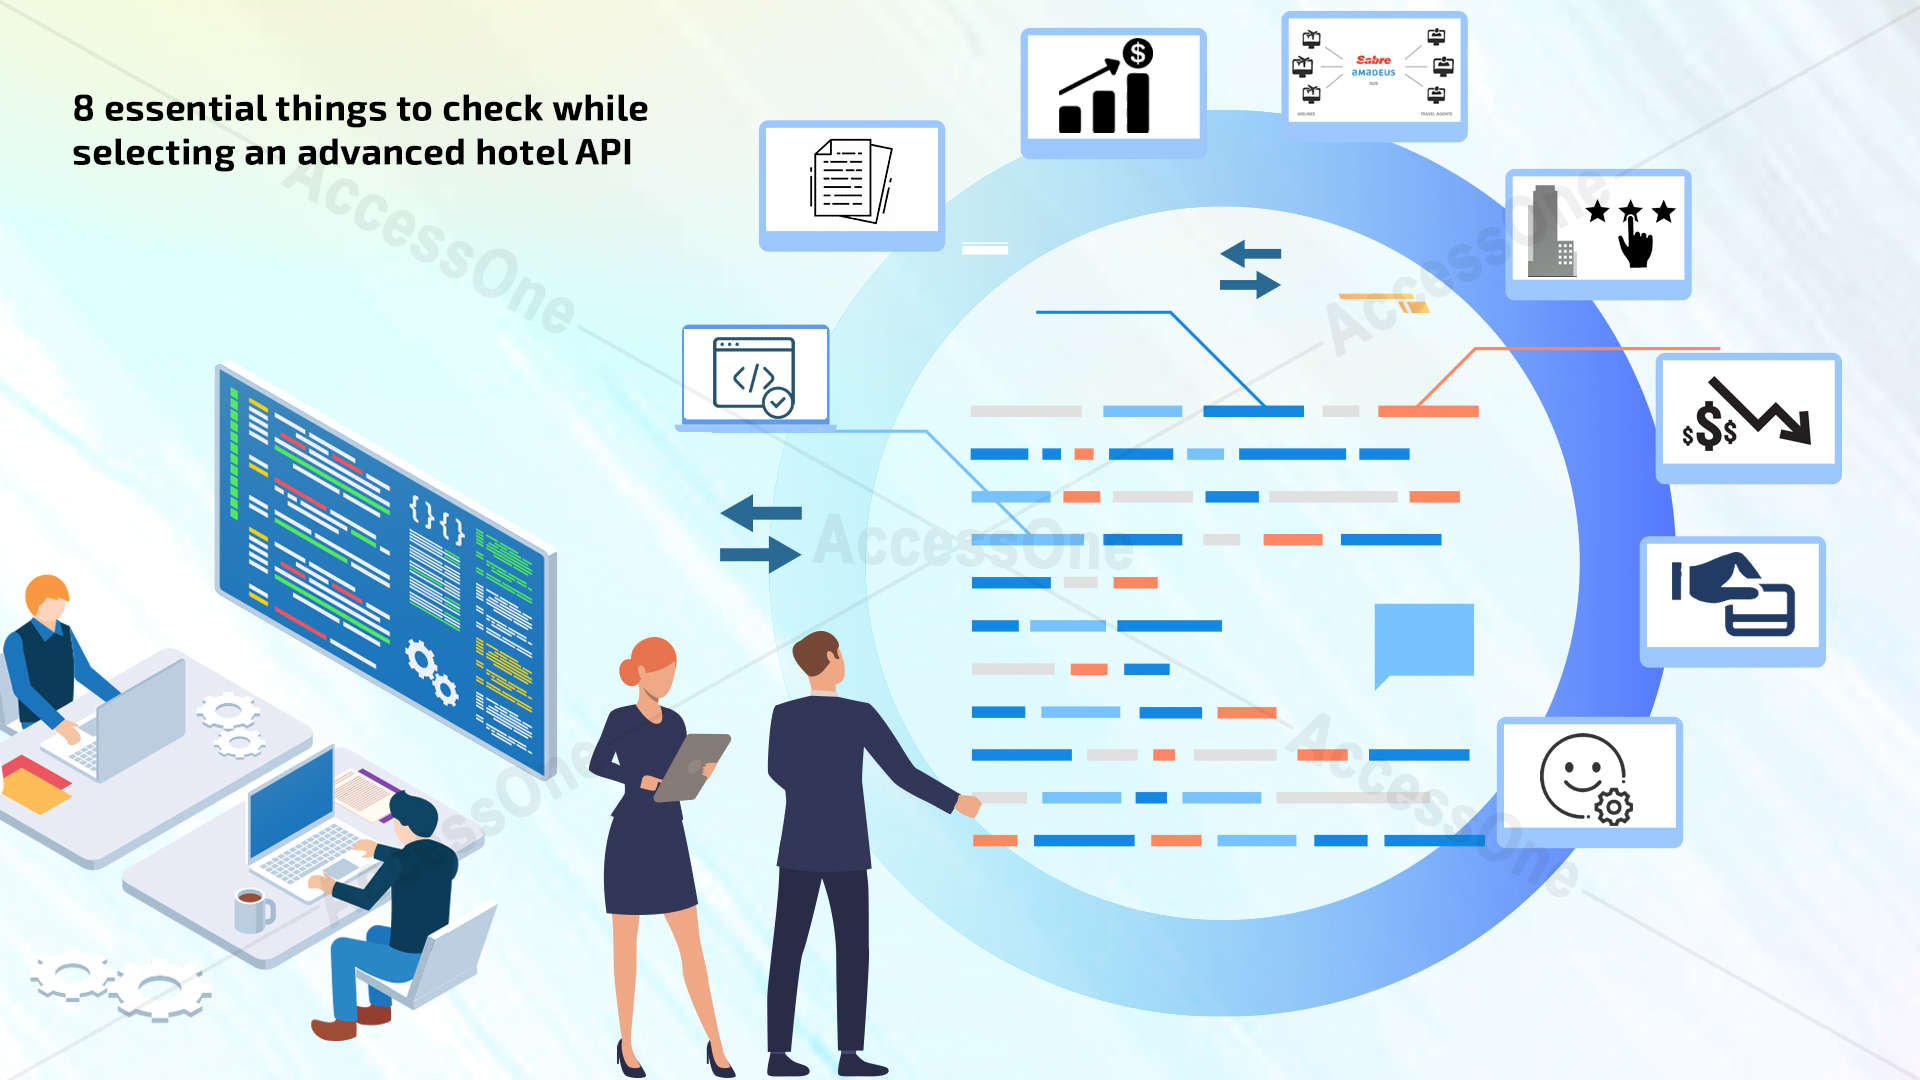 8 essential things to check for an advanced hotel API